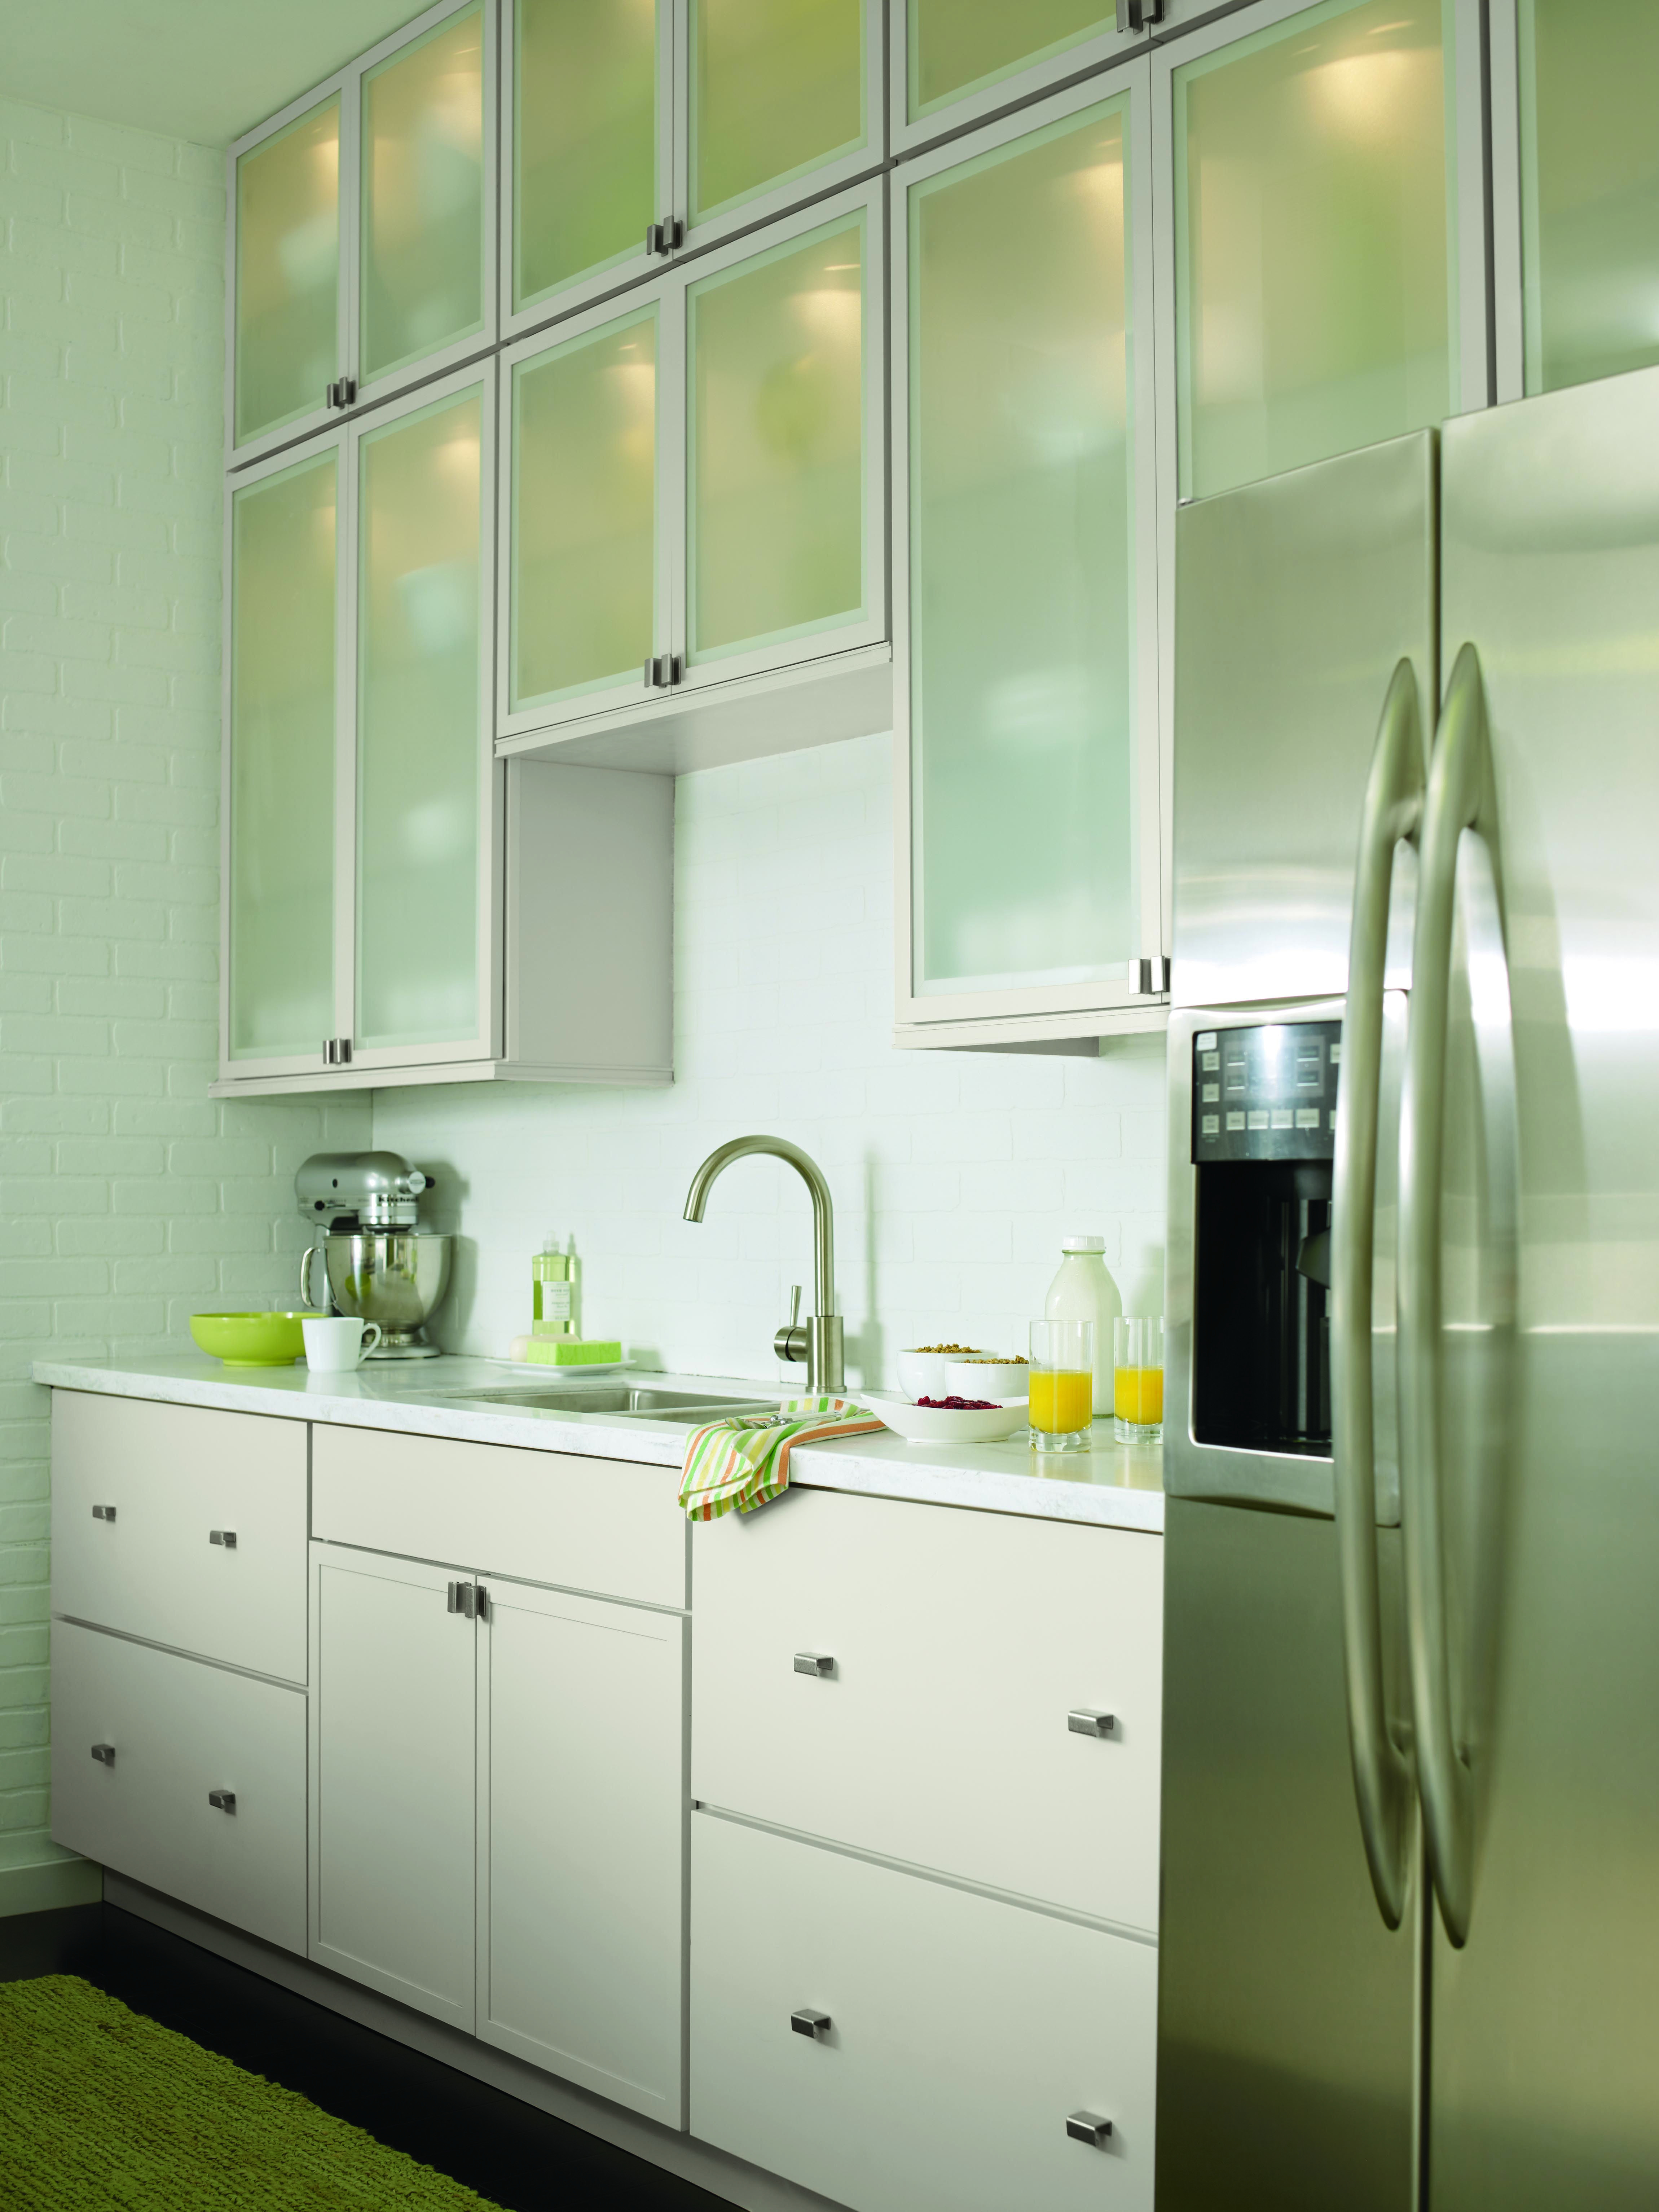 Glass Cabinet Doors Home Depot Elegant Create A the Illusion Of A Bigger Kitchen with the Martha